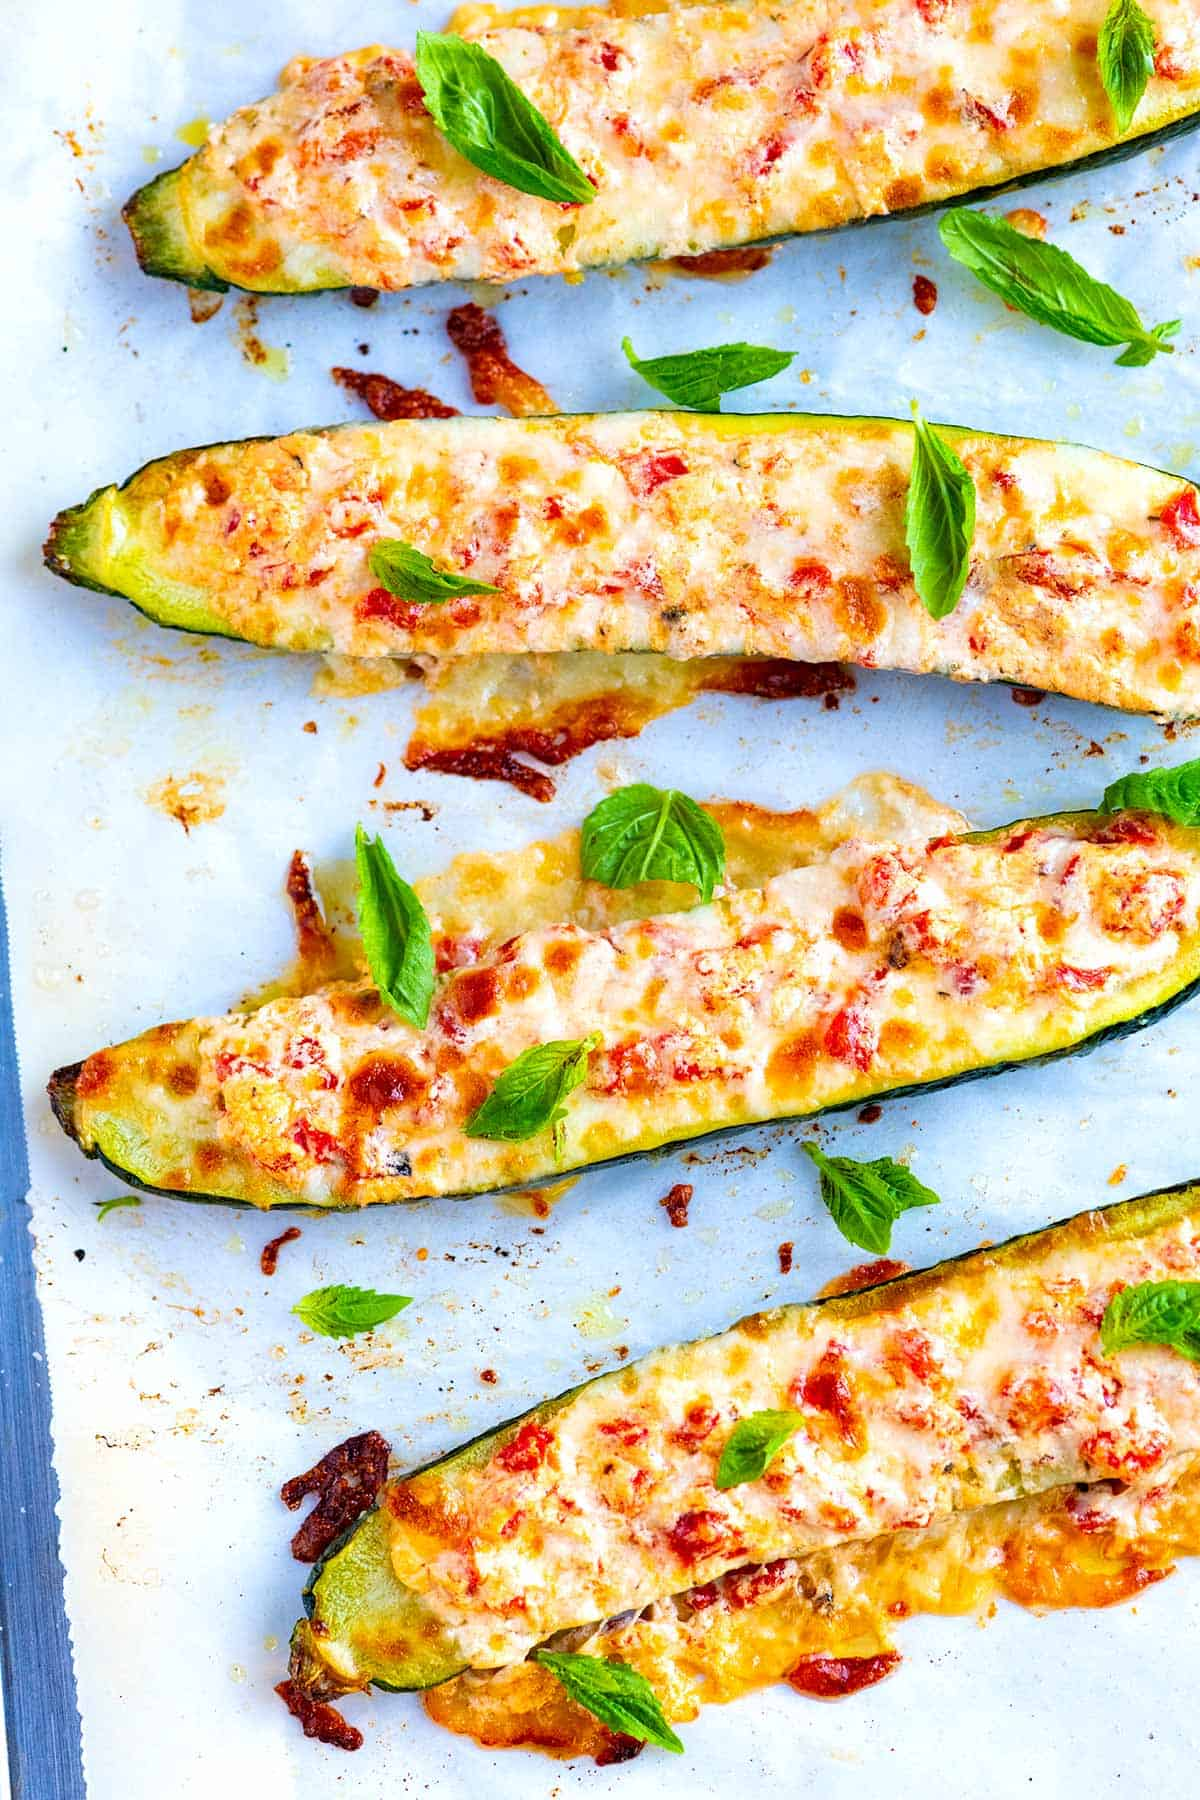 How to Make Cheesy Roasted Red Pepper Stuffed Zucchini Boats